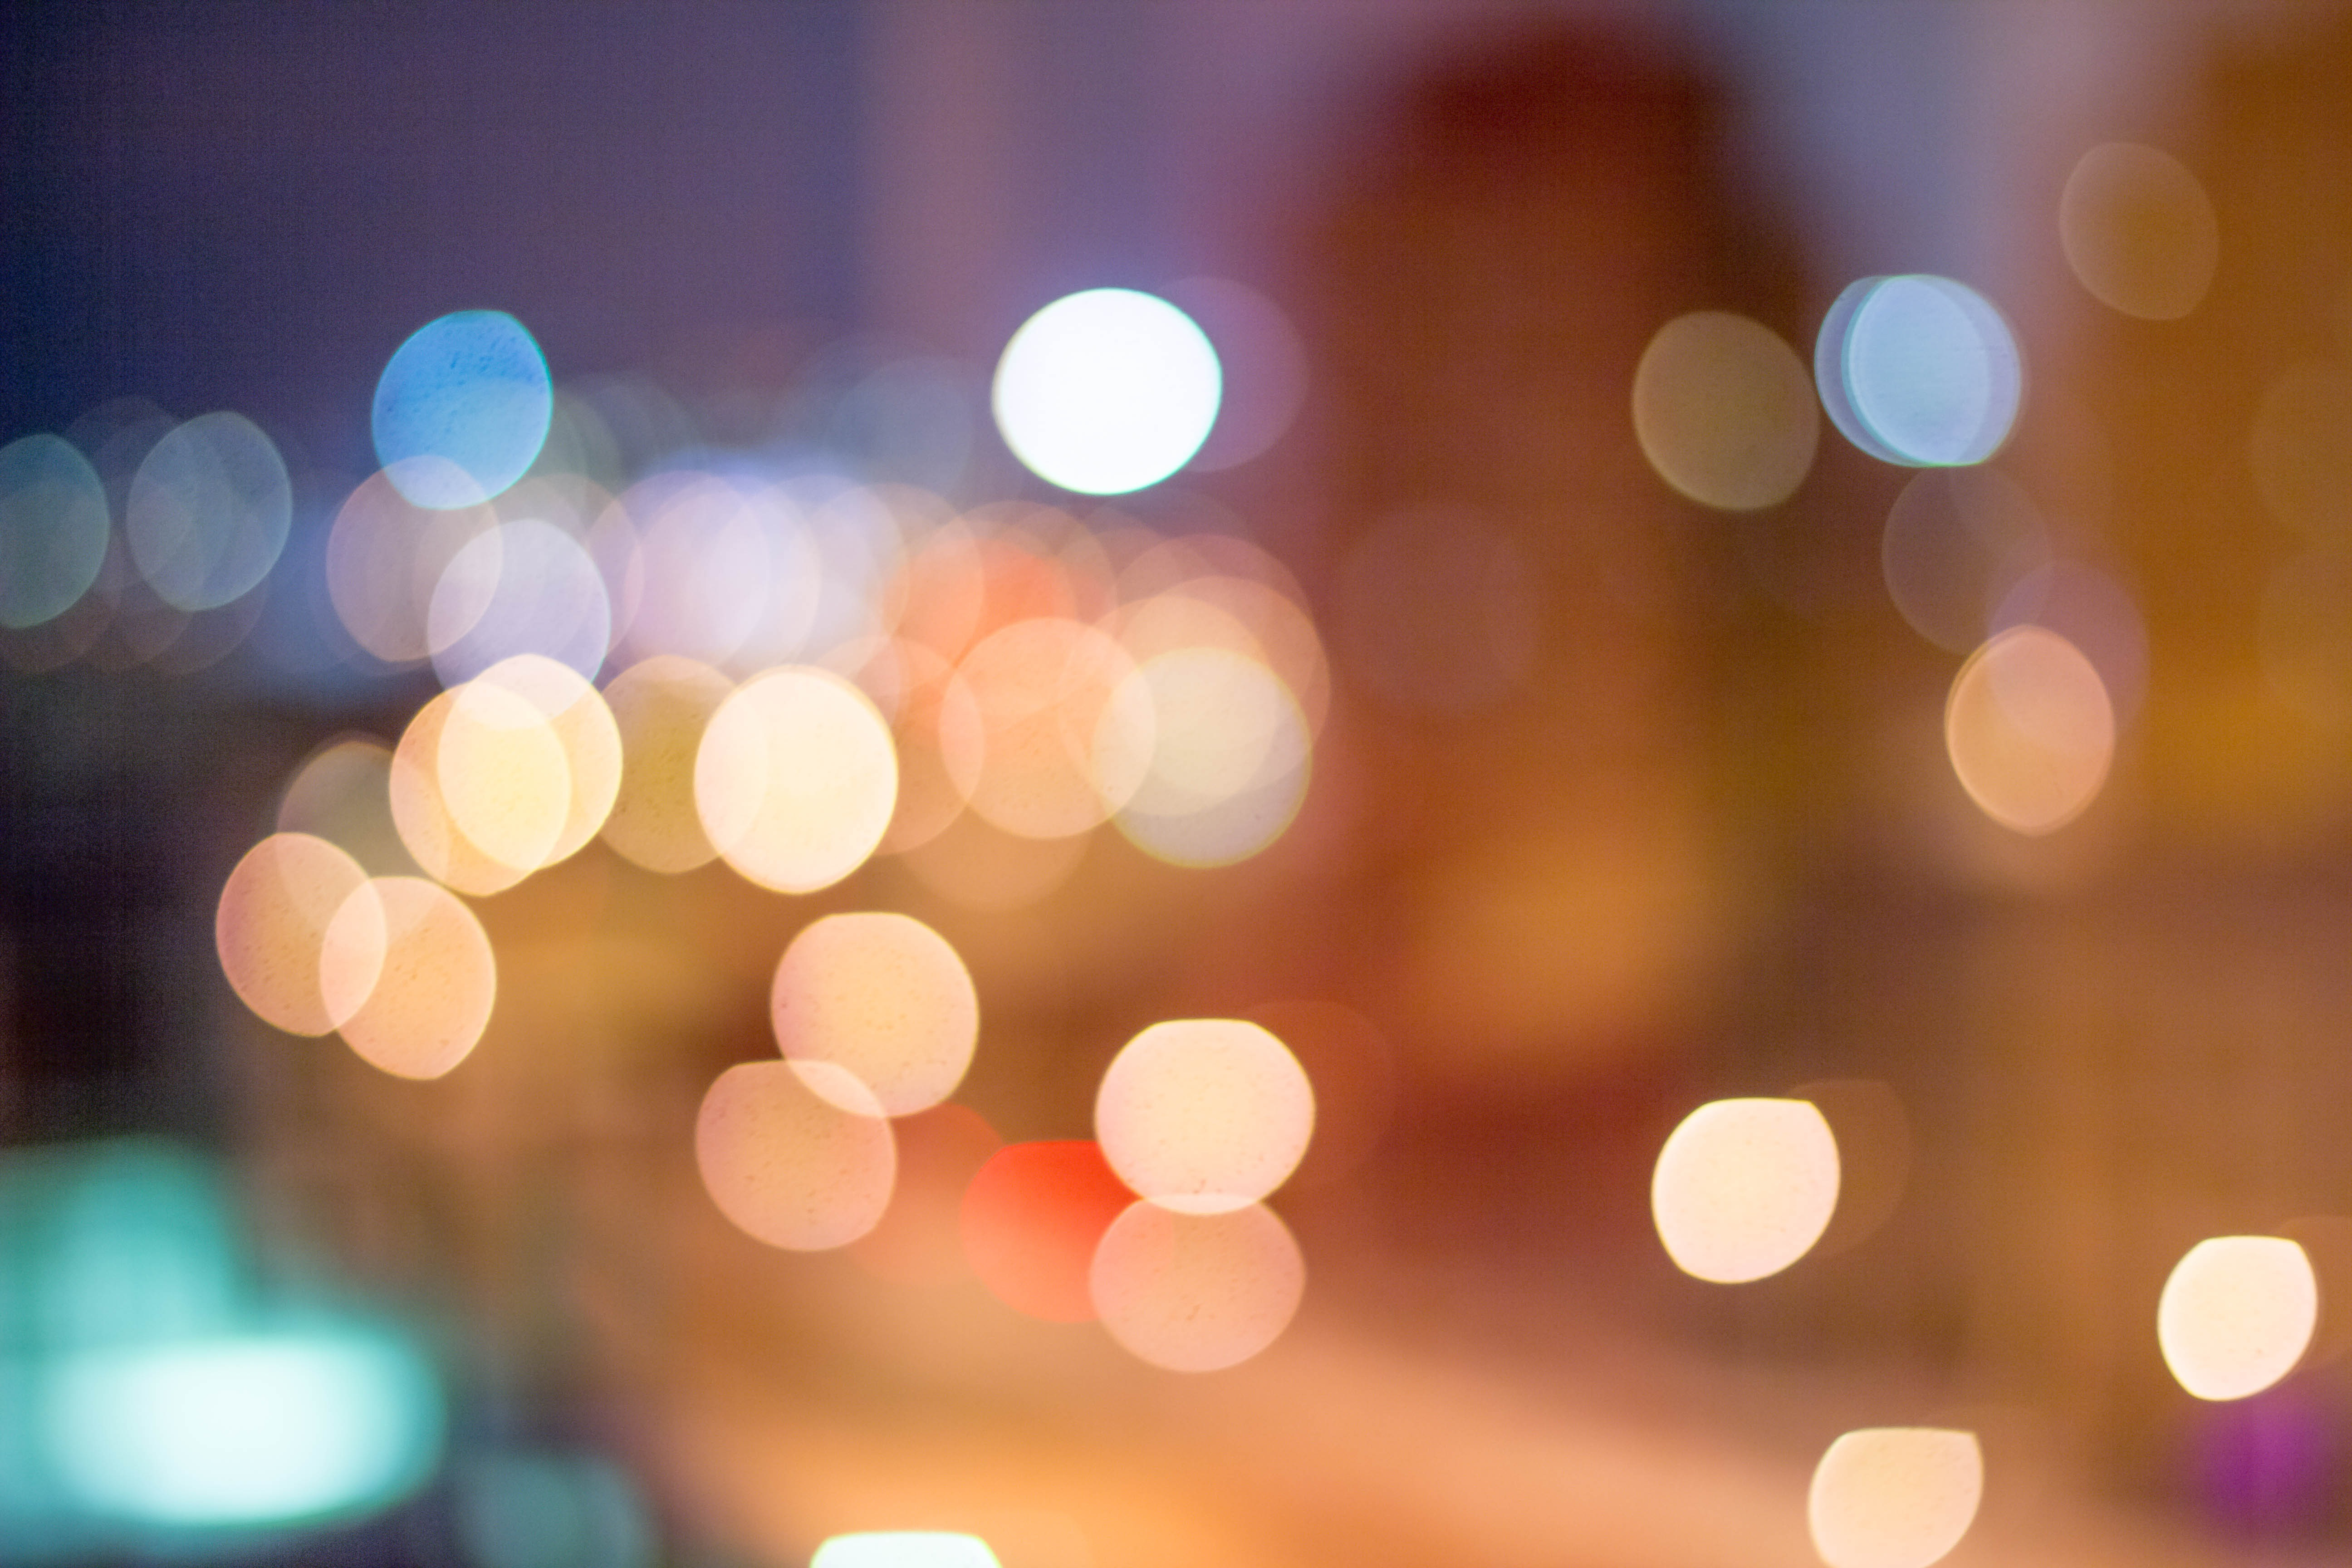 Round Faded Lights During Nighttime Free Stock Photo